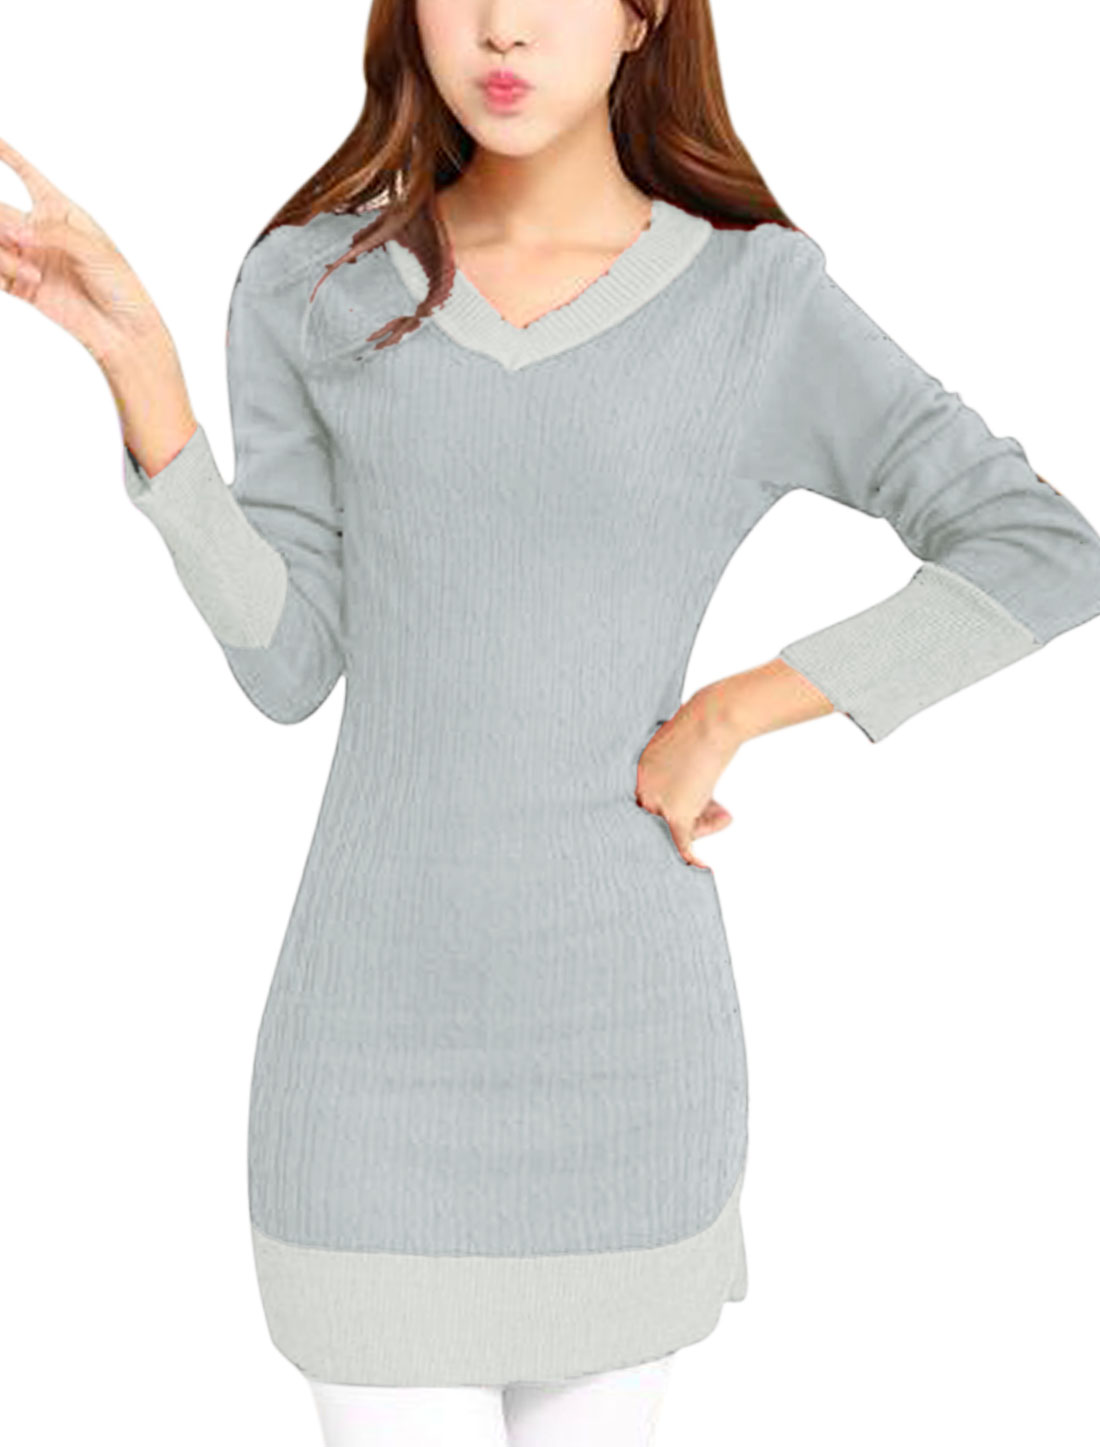 Ladies Light Gray Long Sleeves Pullover V Neck Color Block Knitted Dress S